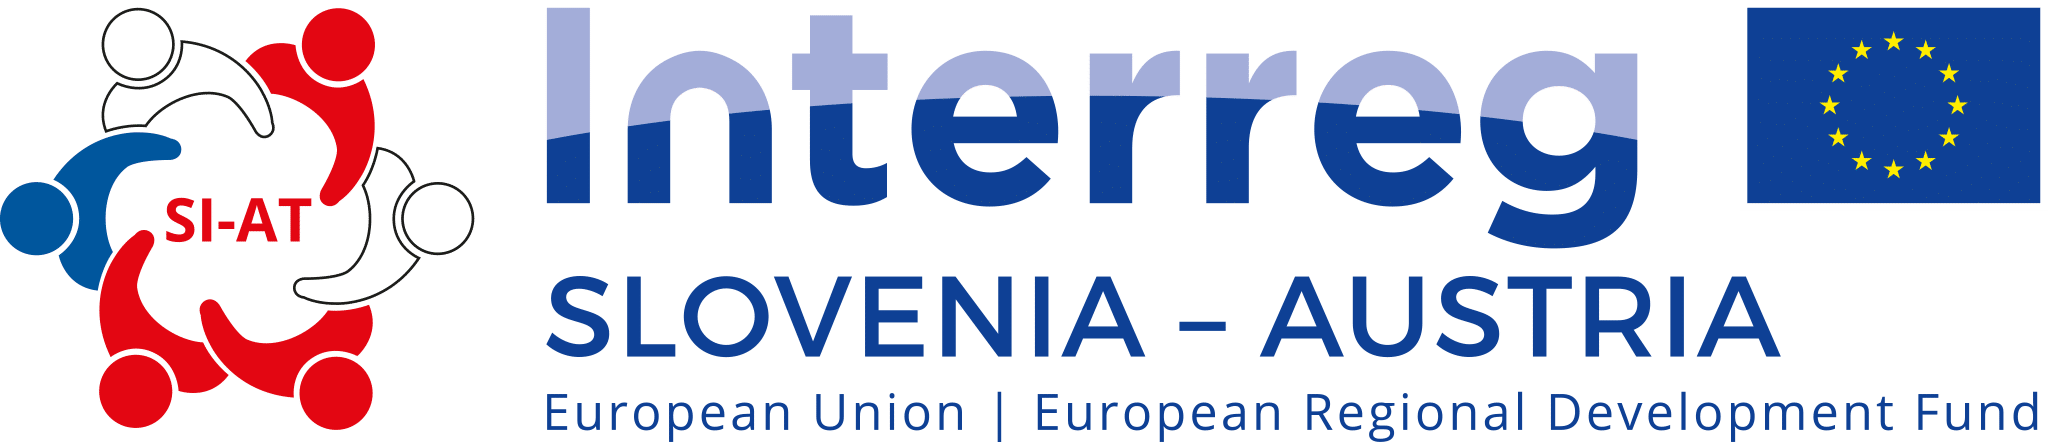 English logo of the Interreg program between Austria and Slovenia